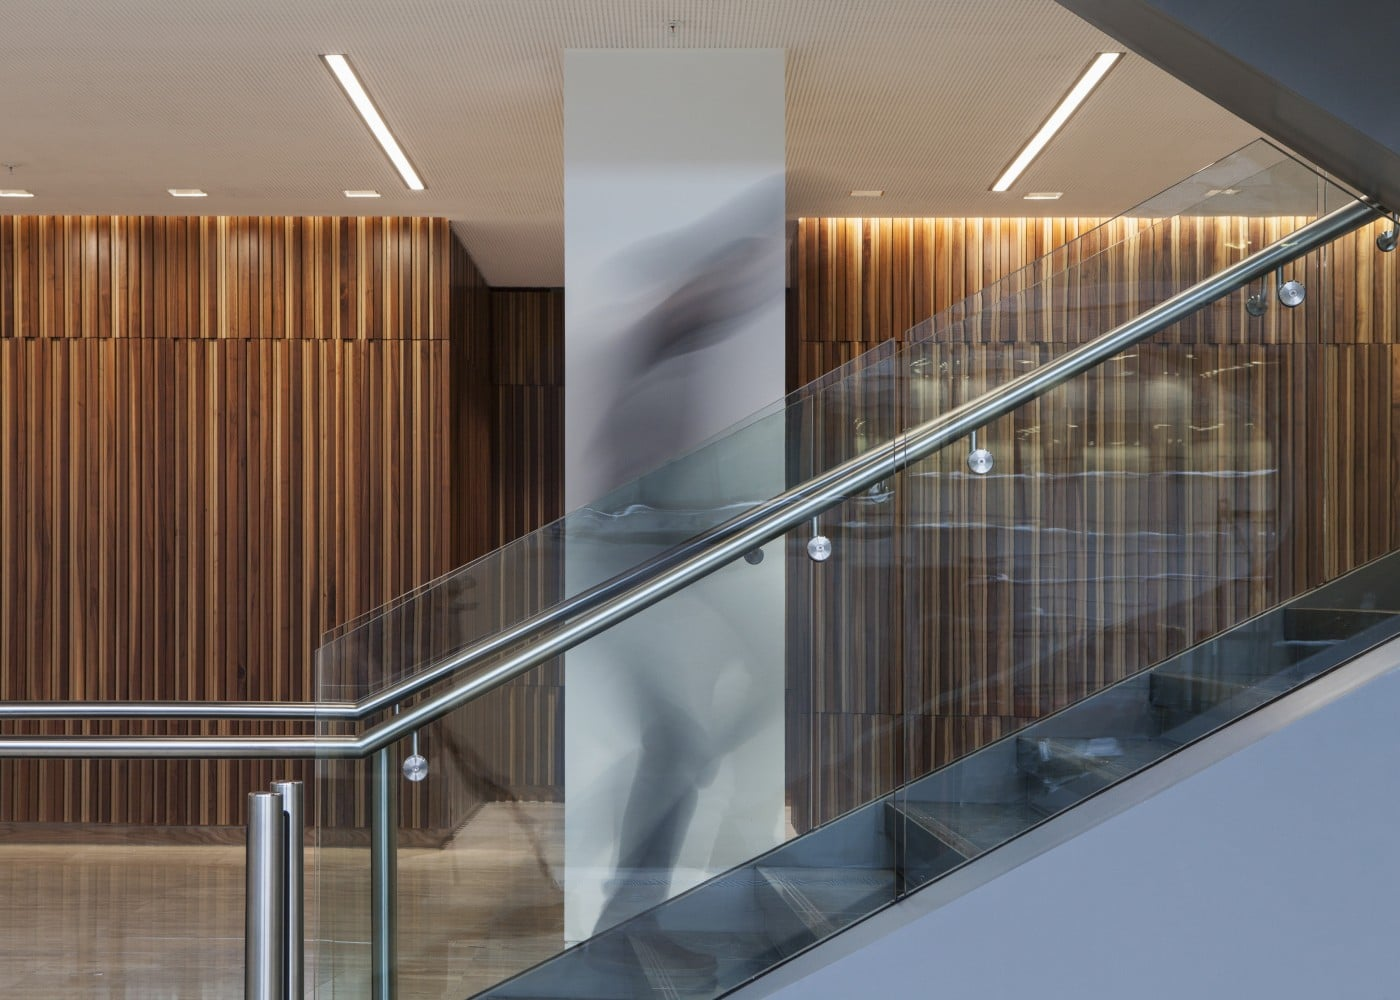 retail lighting design: One Spinningfields stairway